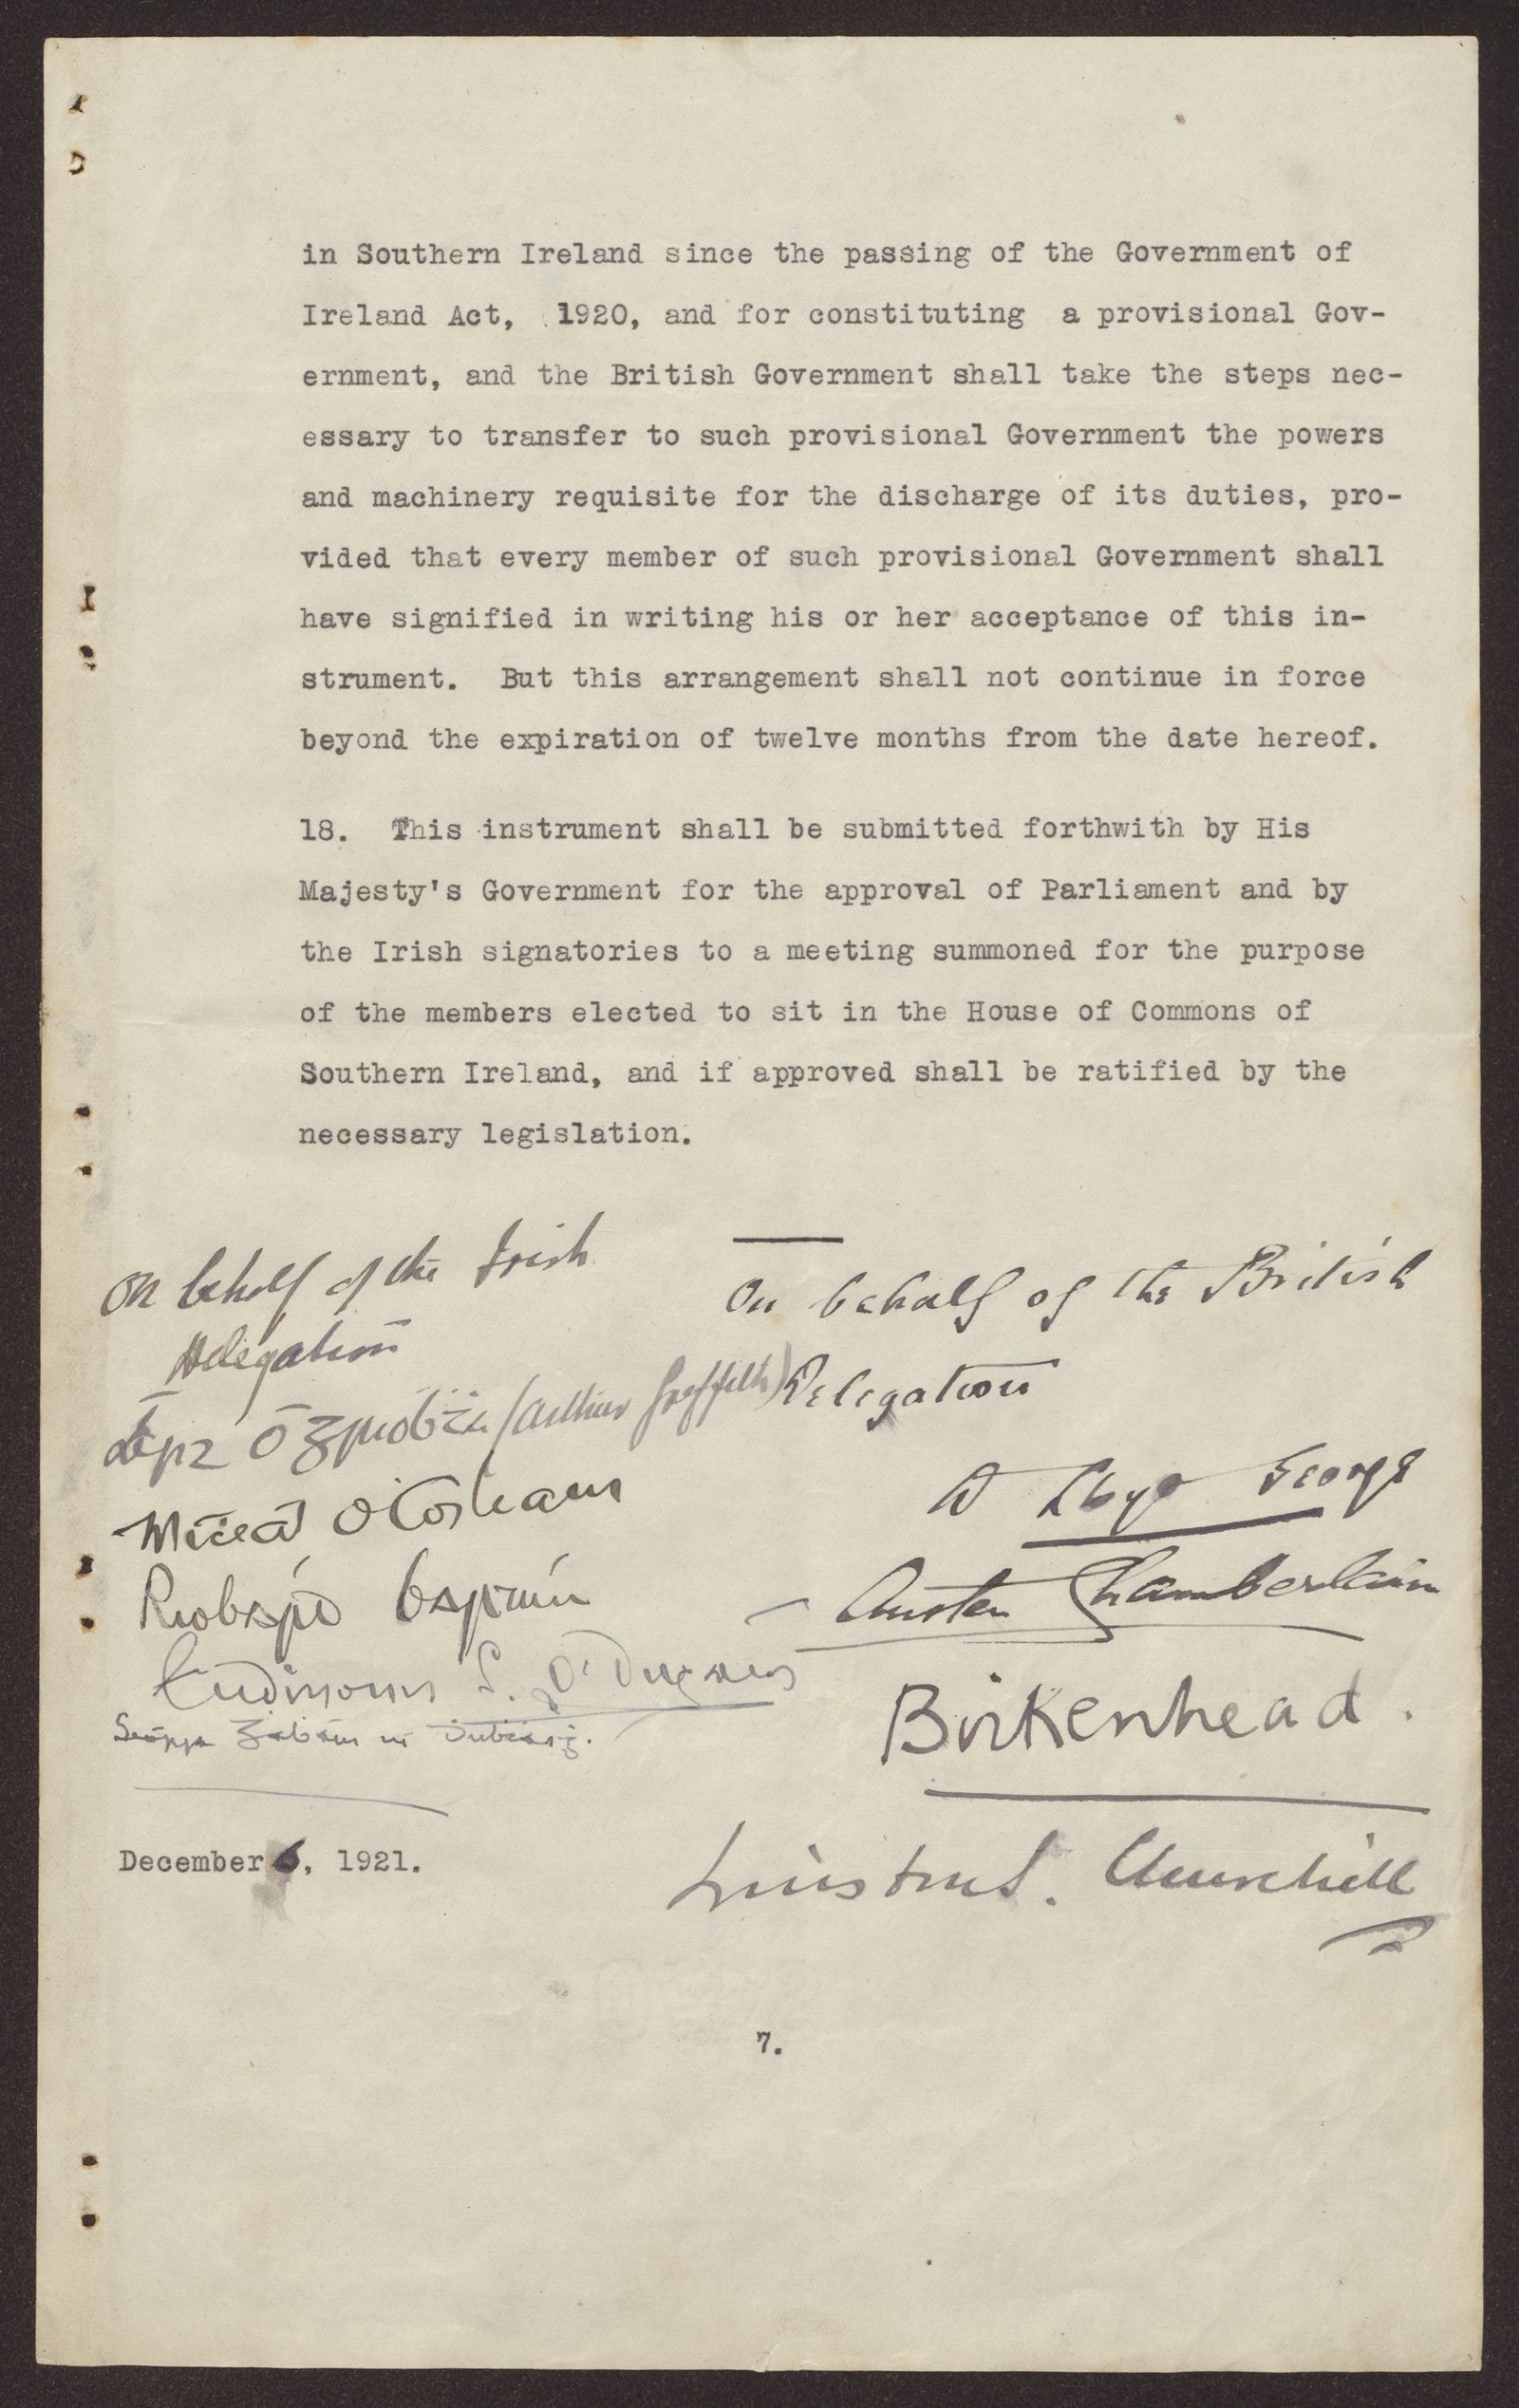 Image - The two delegations sign the treaty. (Credit: By kind permission of the National Archives)